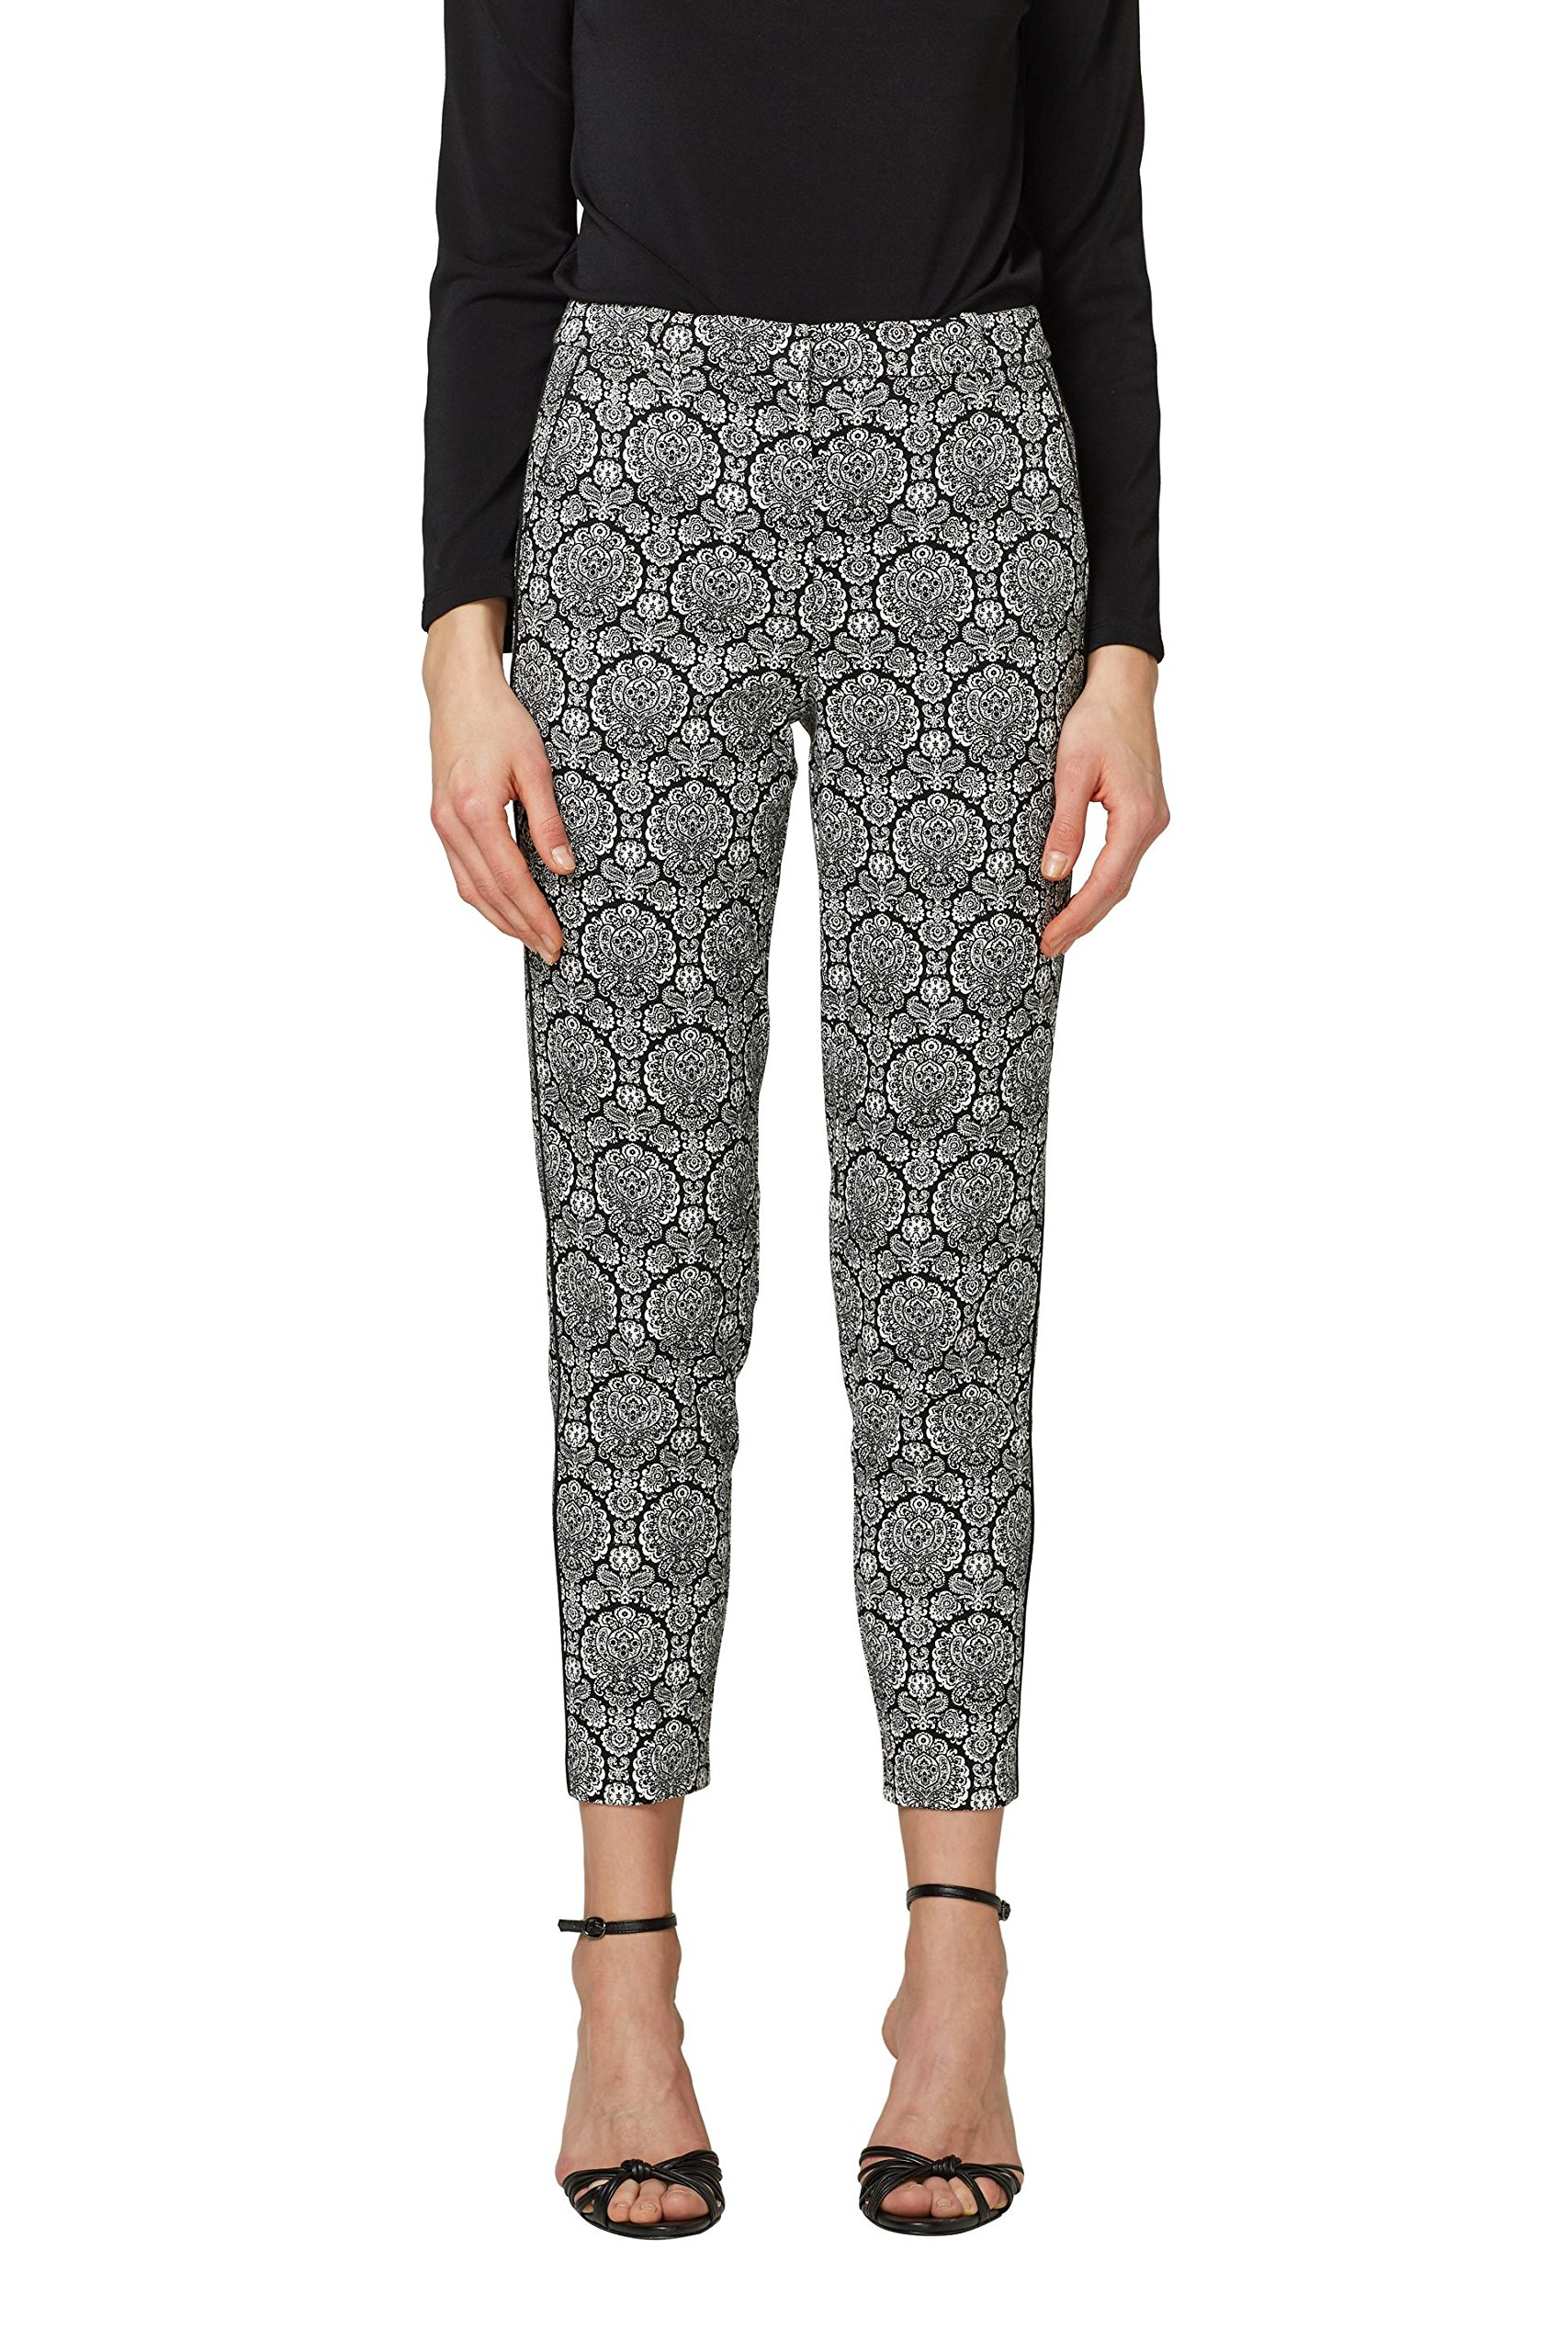 Collection Esprit PantalonNoirblack 028eo1b006 00140taille Fabricant38Femme 1lFKJTc